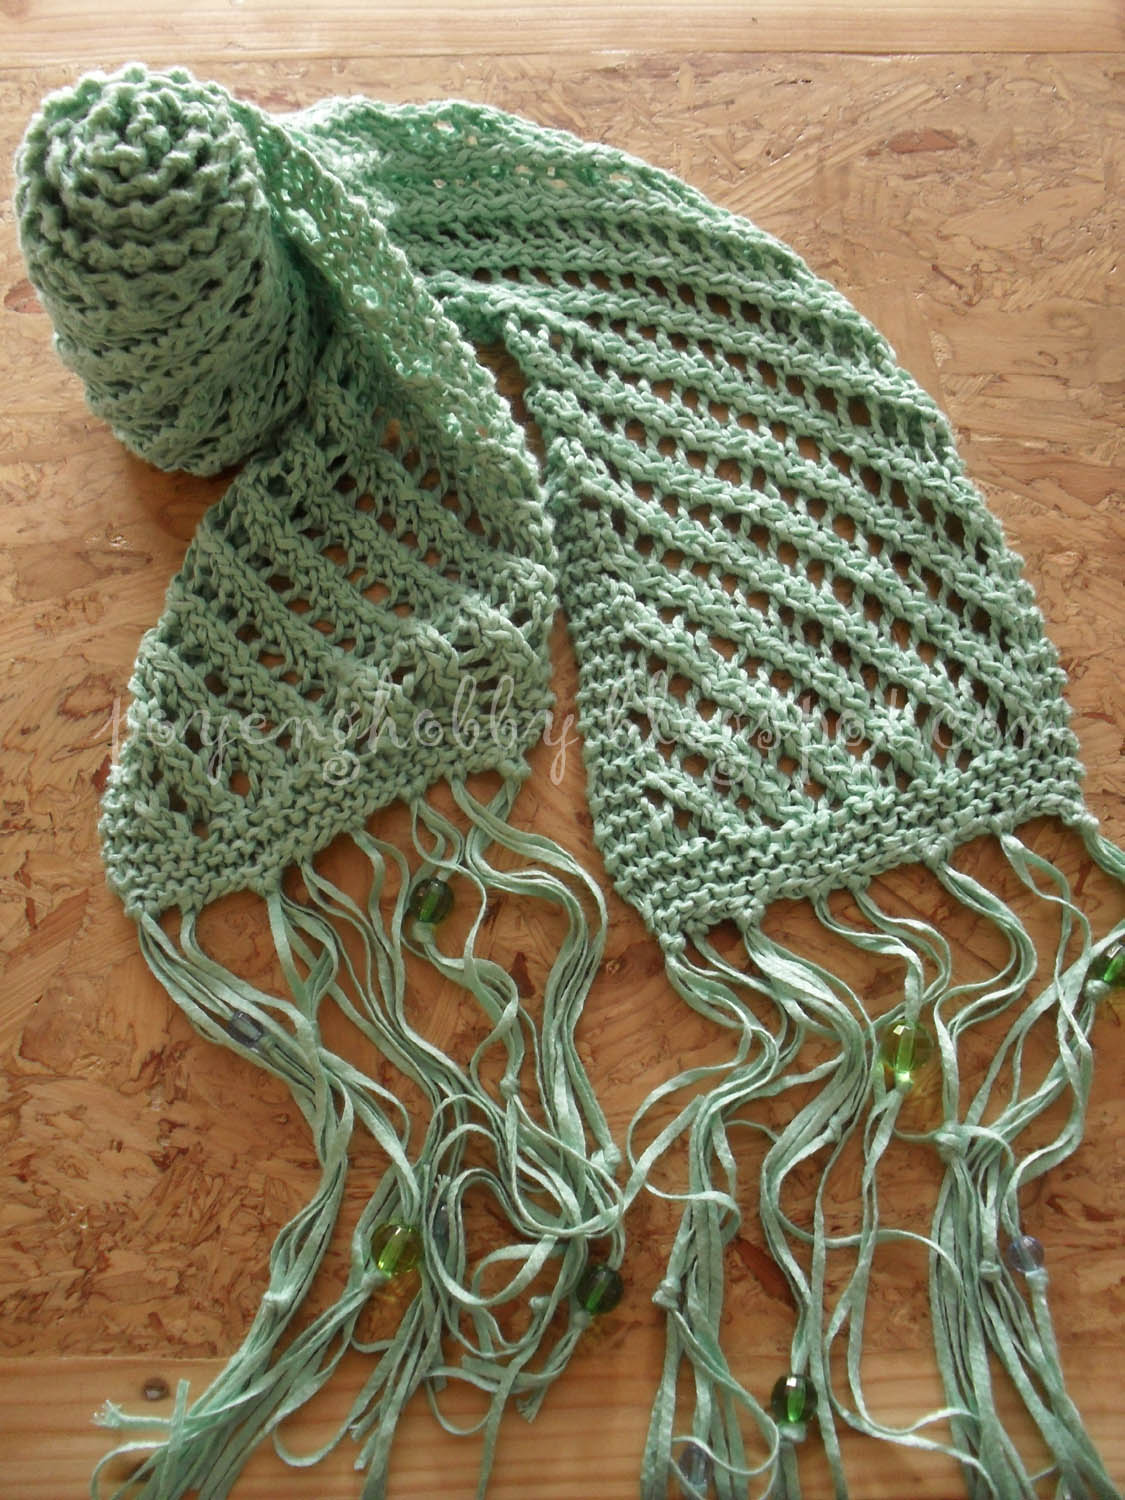 Lace Knitting Patterns Free : KNITTING LACE SCARF PATTERNS - FREE PATTERNS